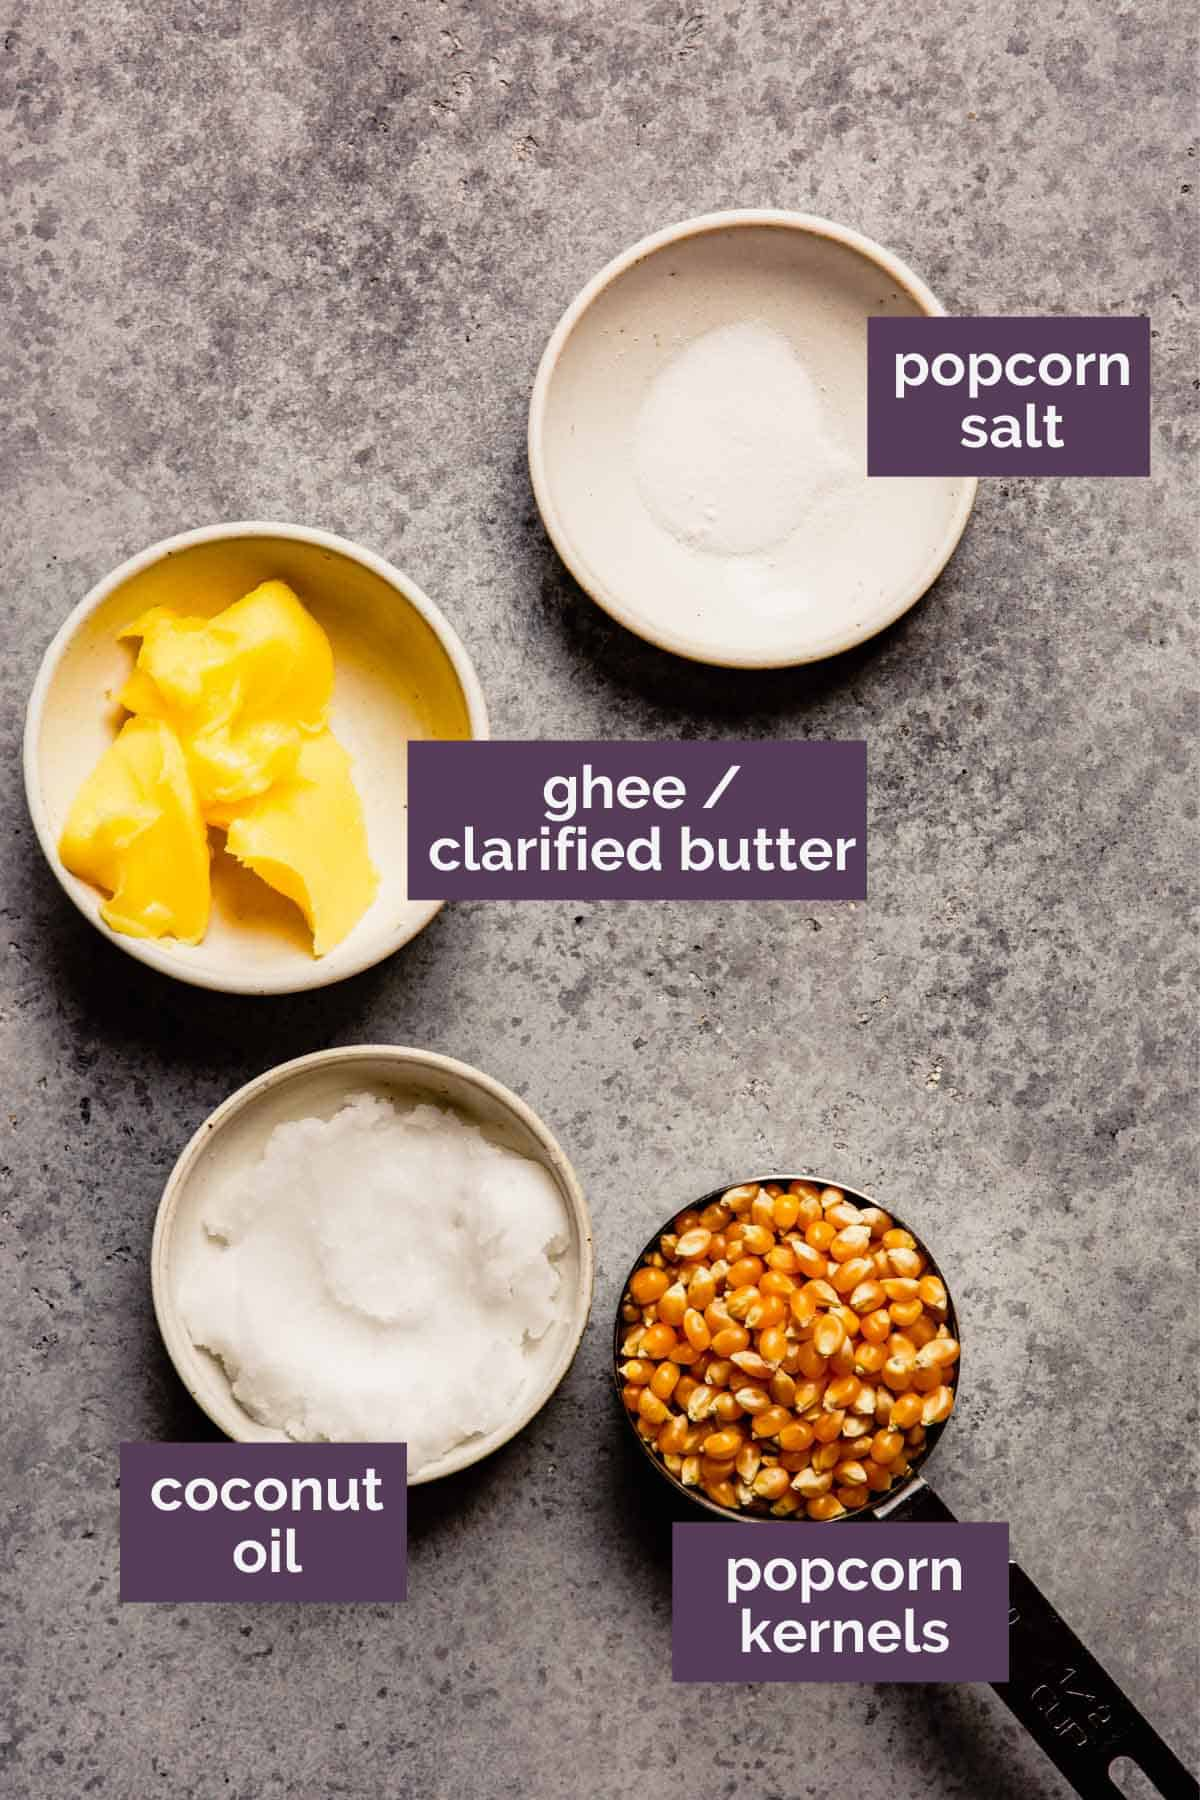 Ingredients for homemade popcorn prepped and labeled.